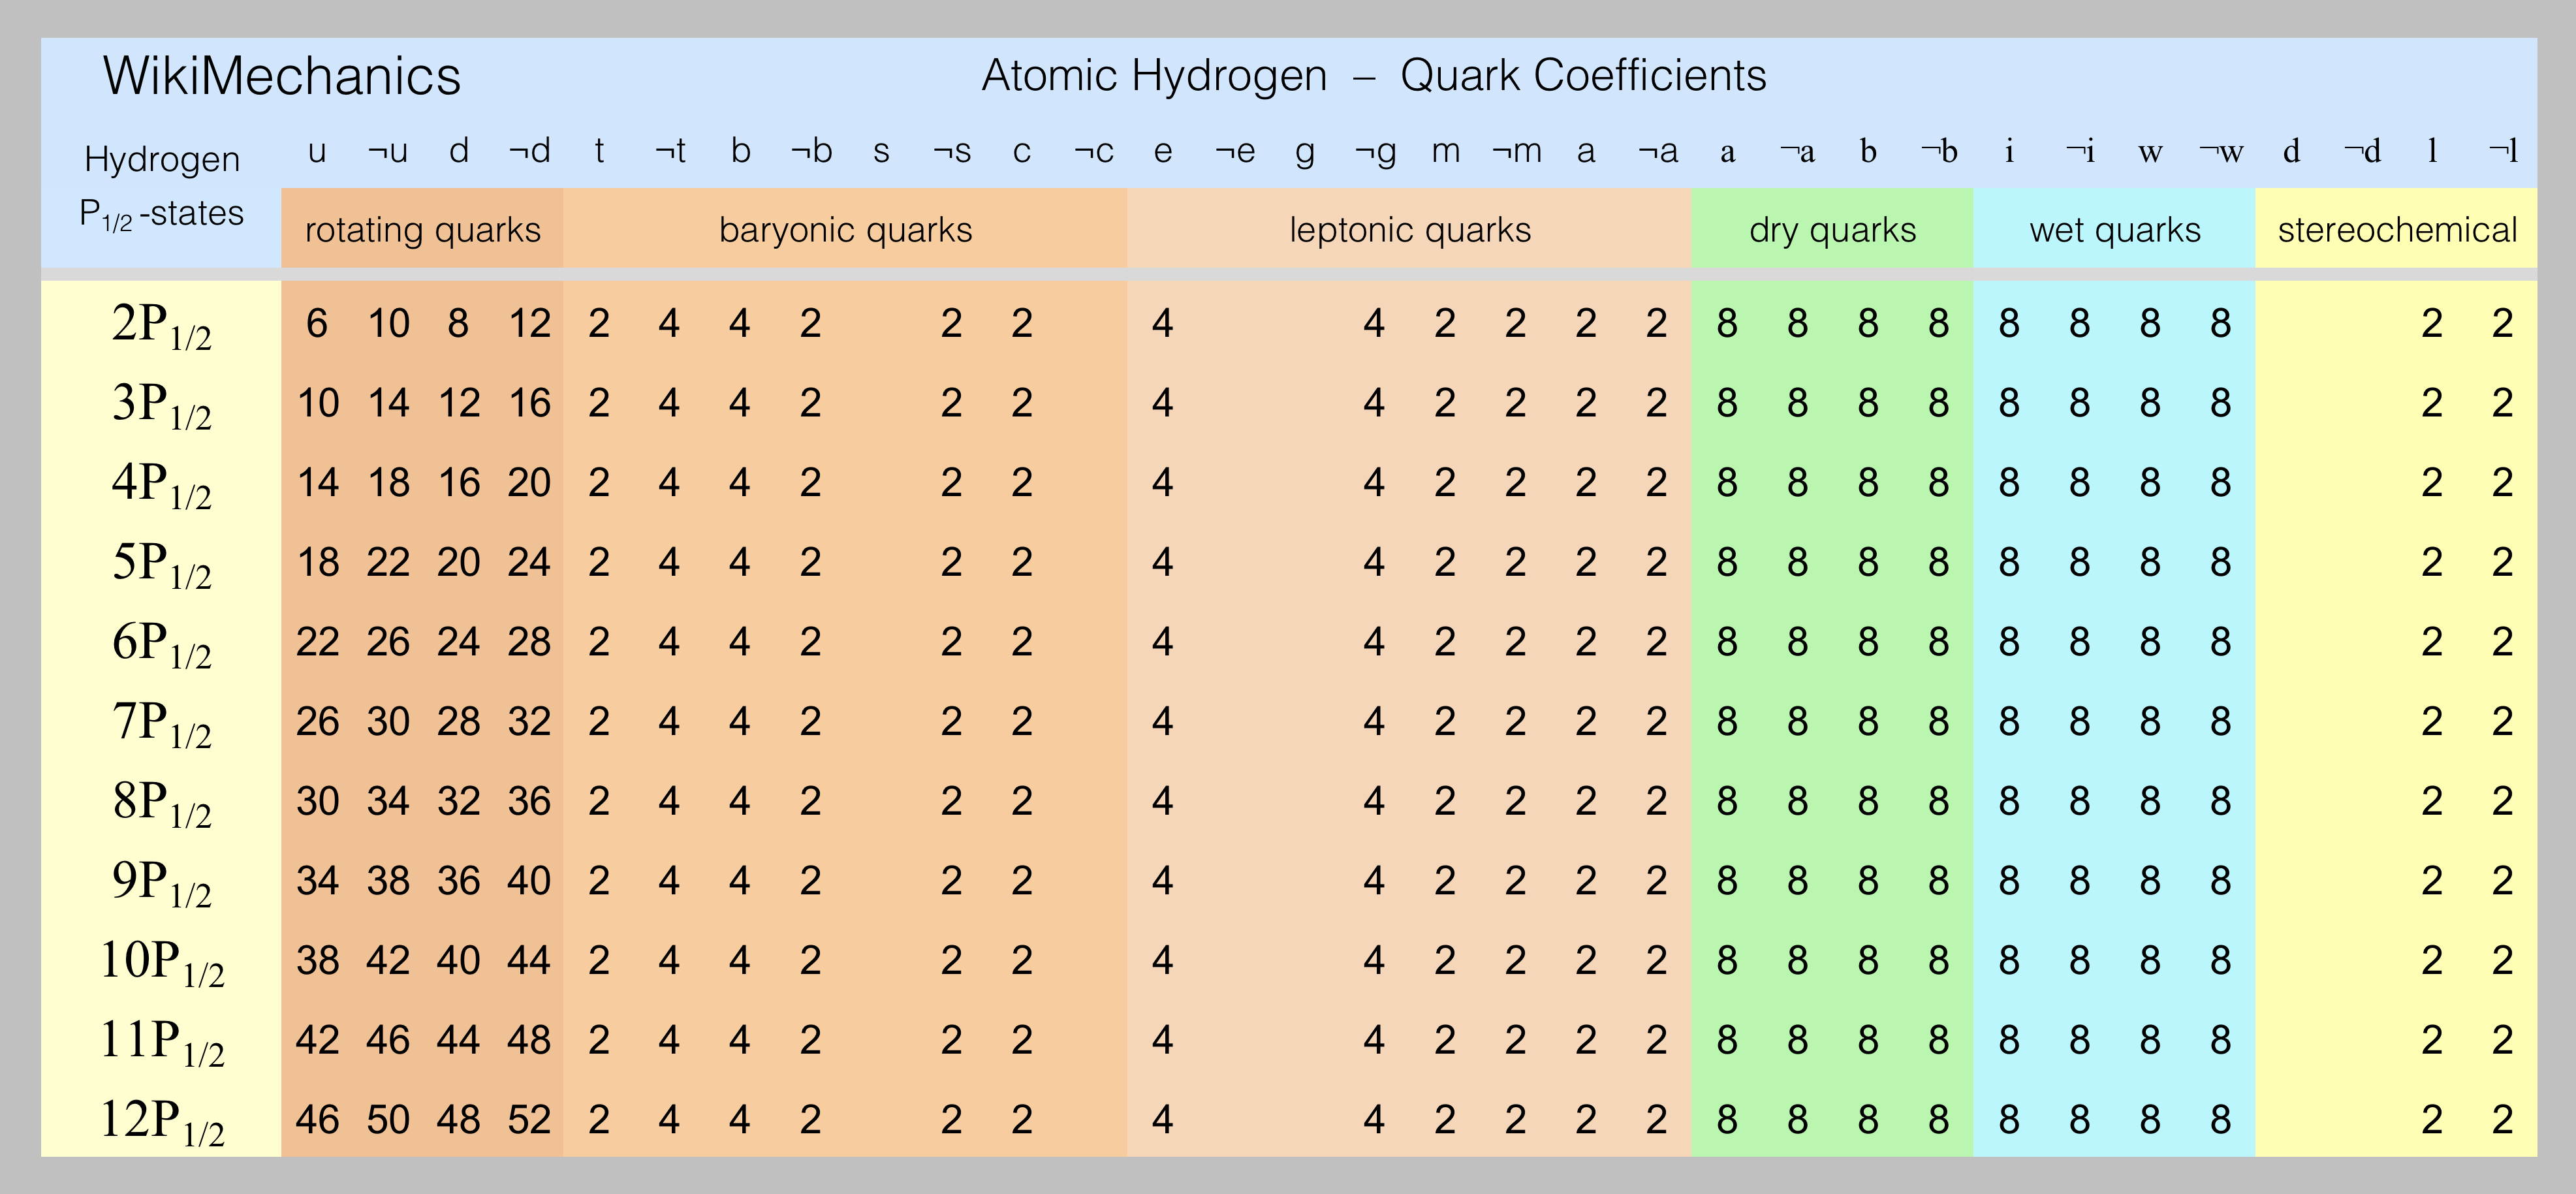 hp1-2quarks.png